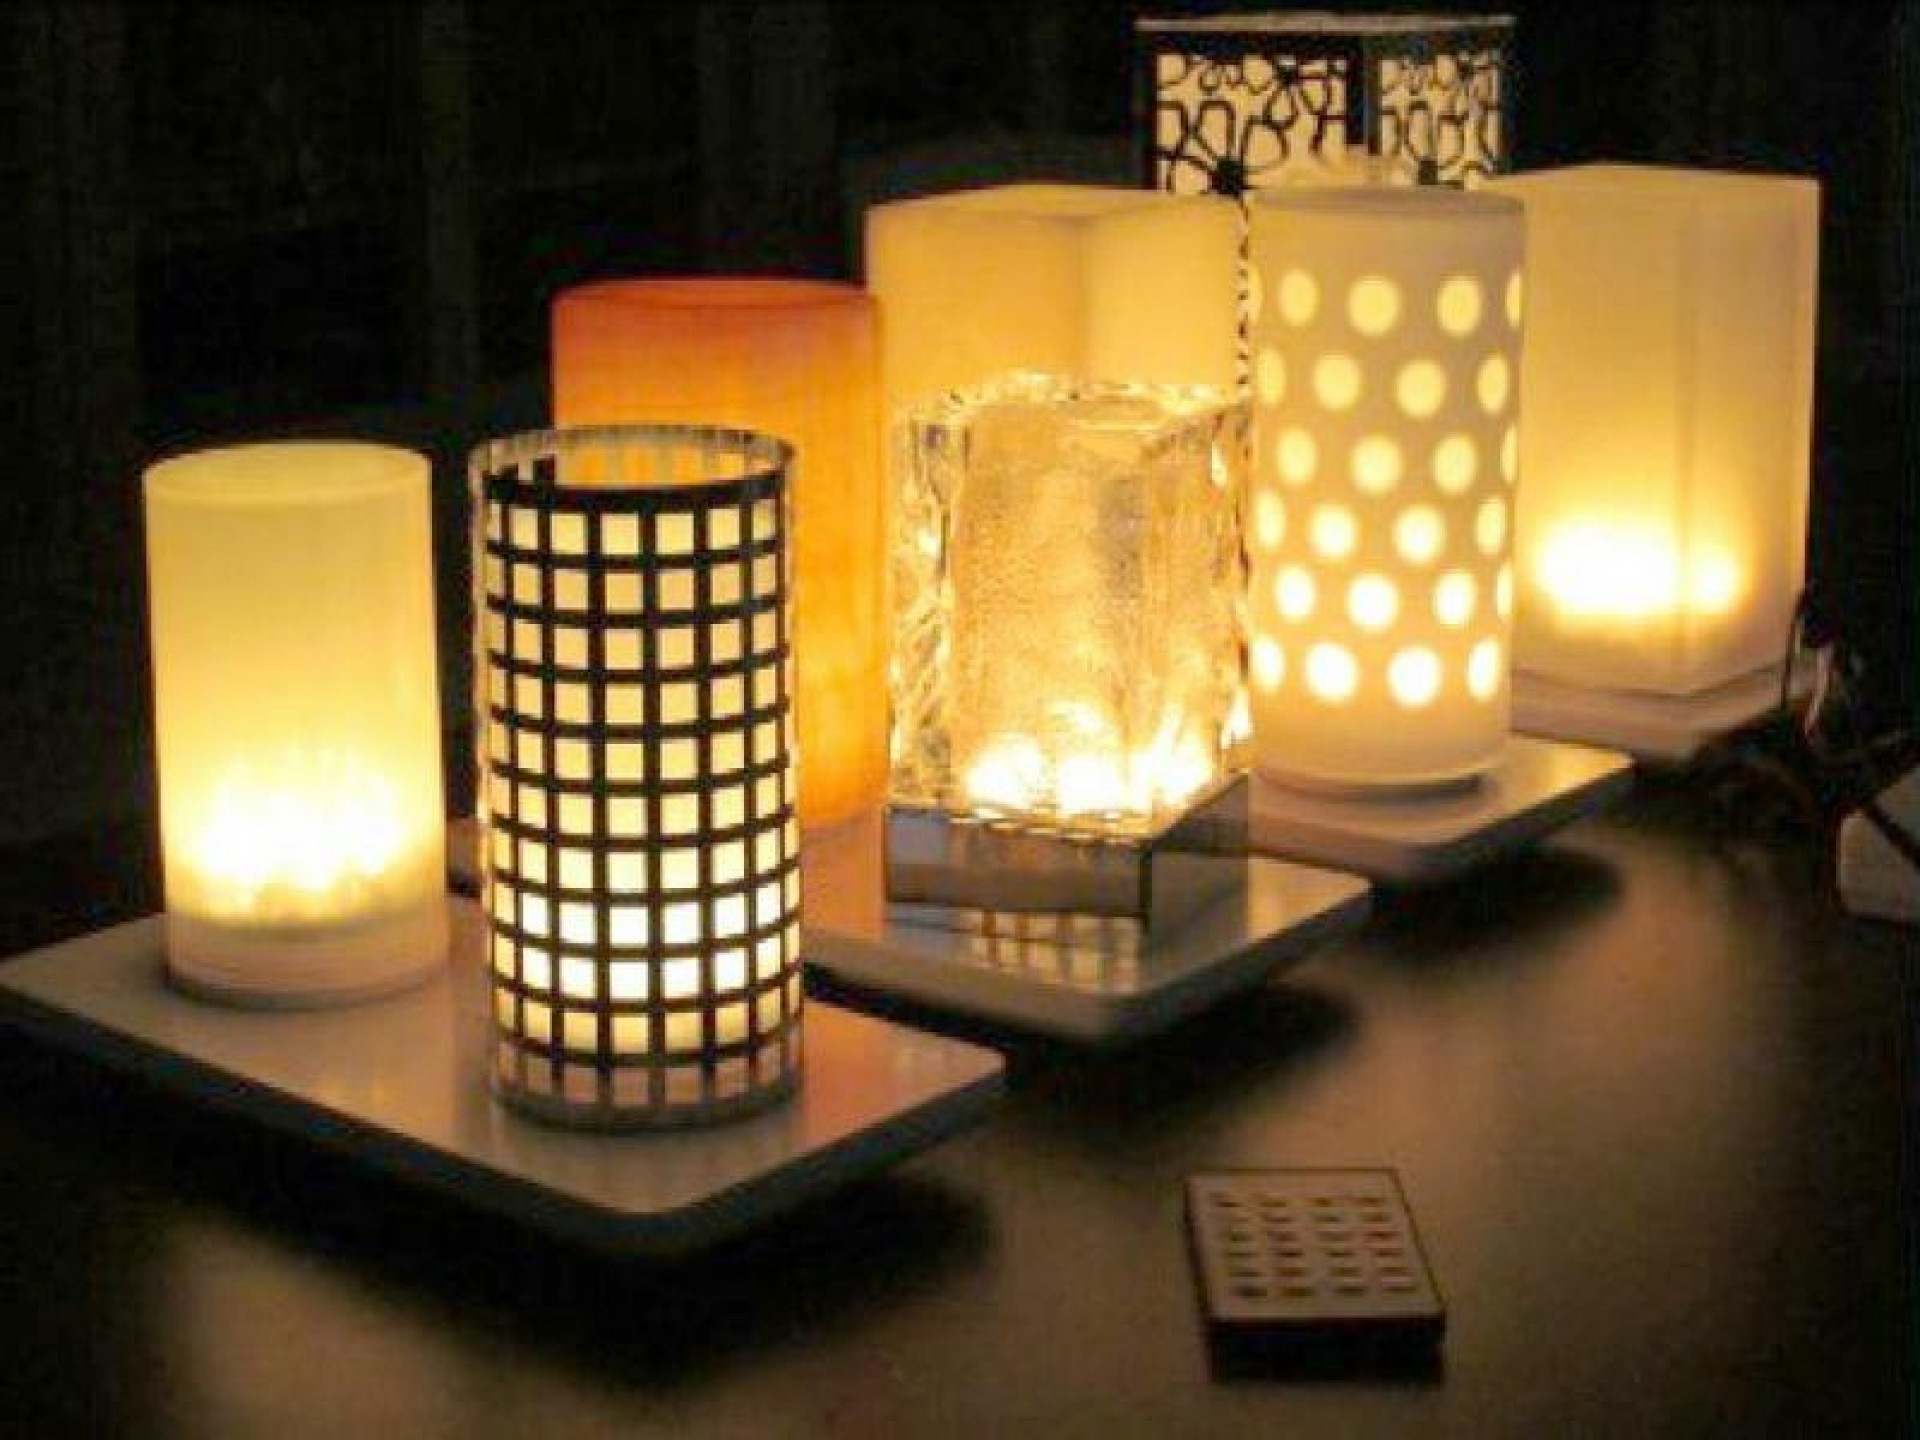 2019 Battery Operated Living Room Table Lamps Inside Battery Operated Table Lamps For Living Room Cordless With Shade (View 1 of 20)